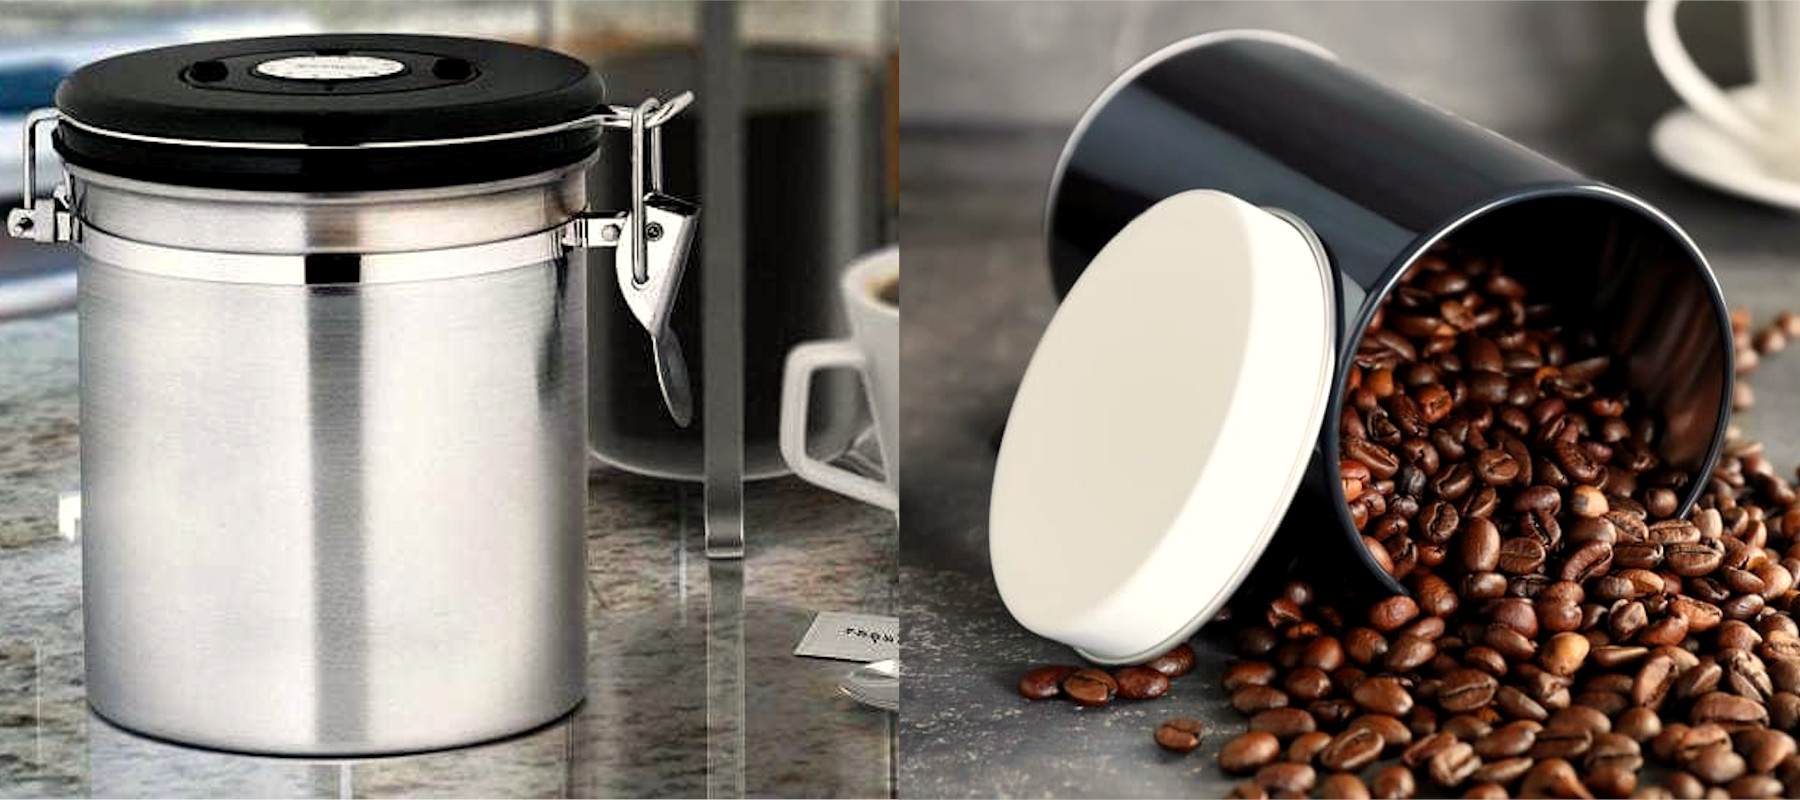 Top 5 Coffee Storage Containers   Super Stylish Canisters